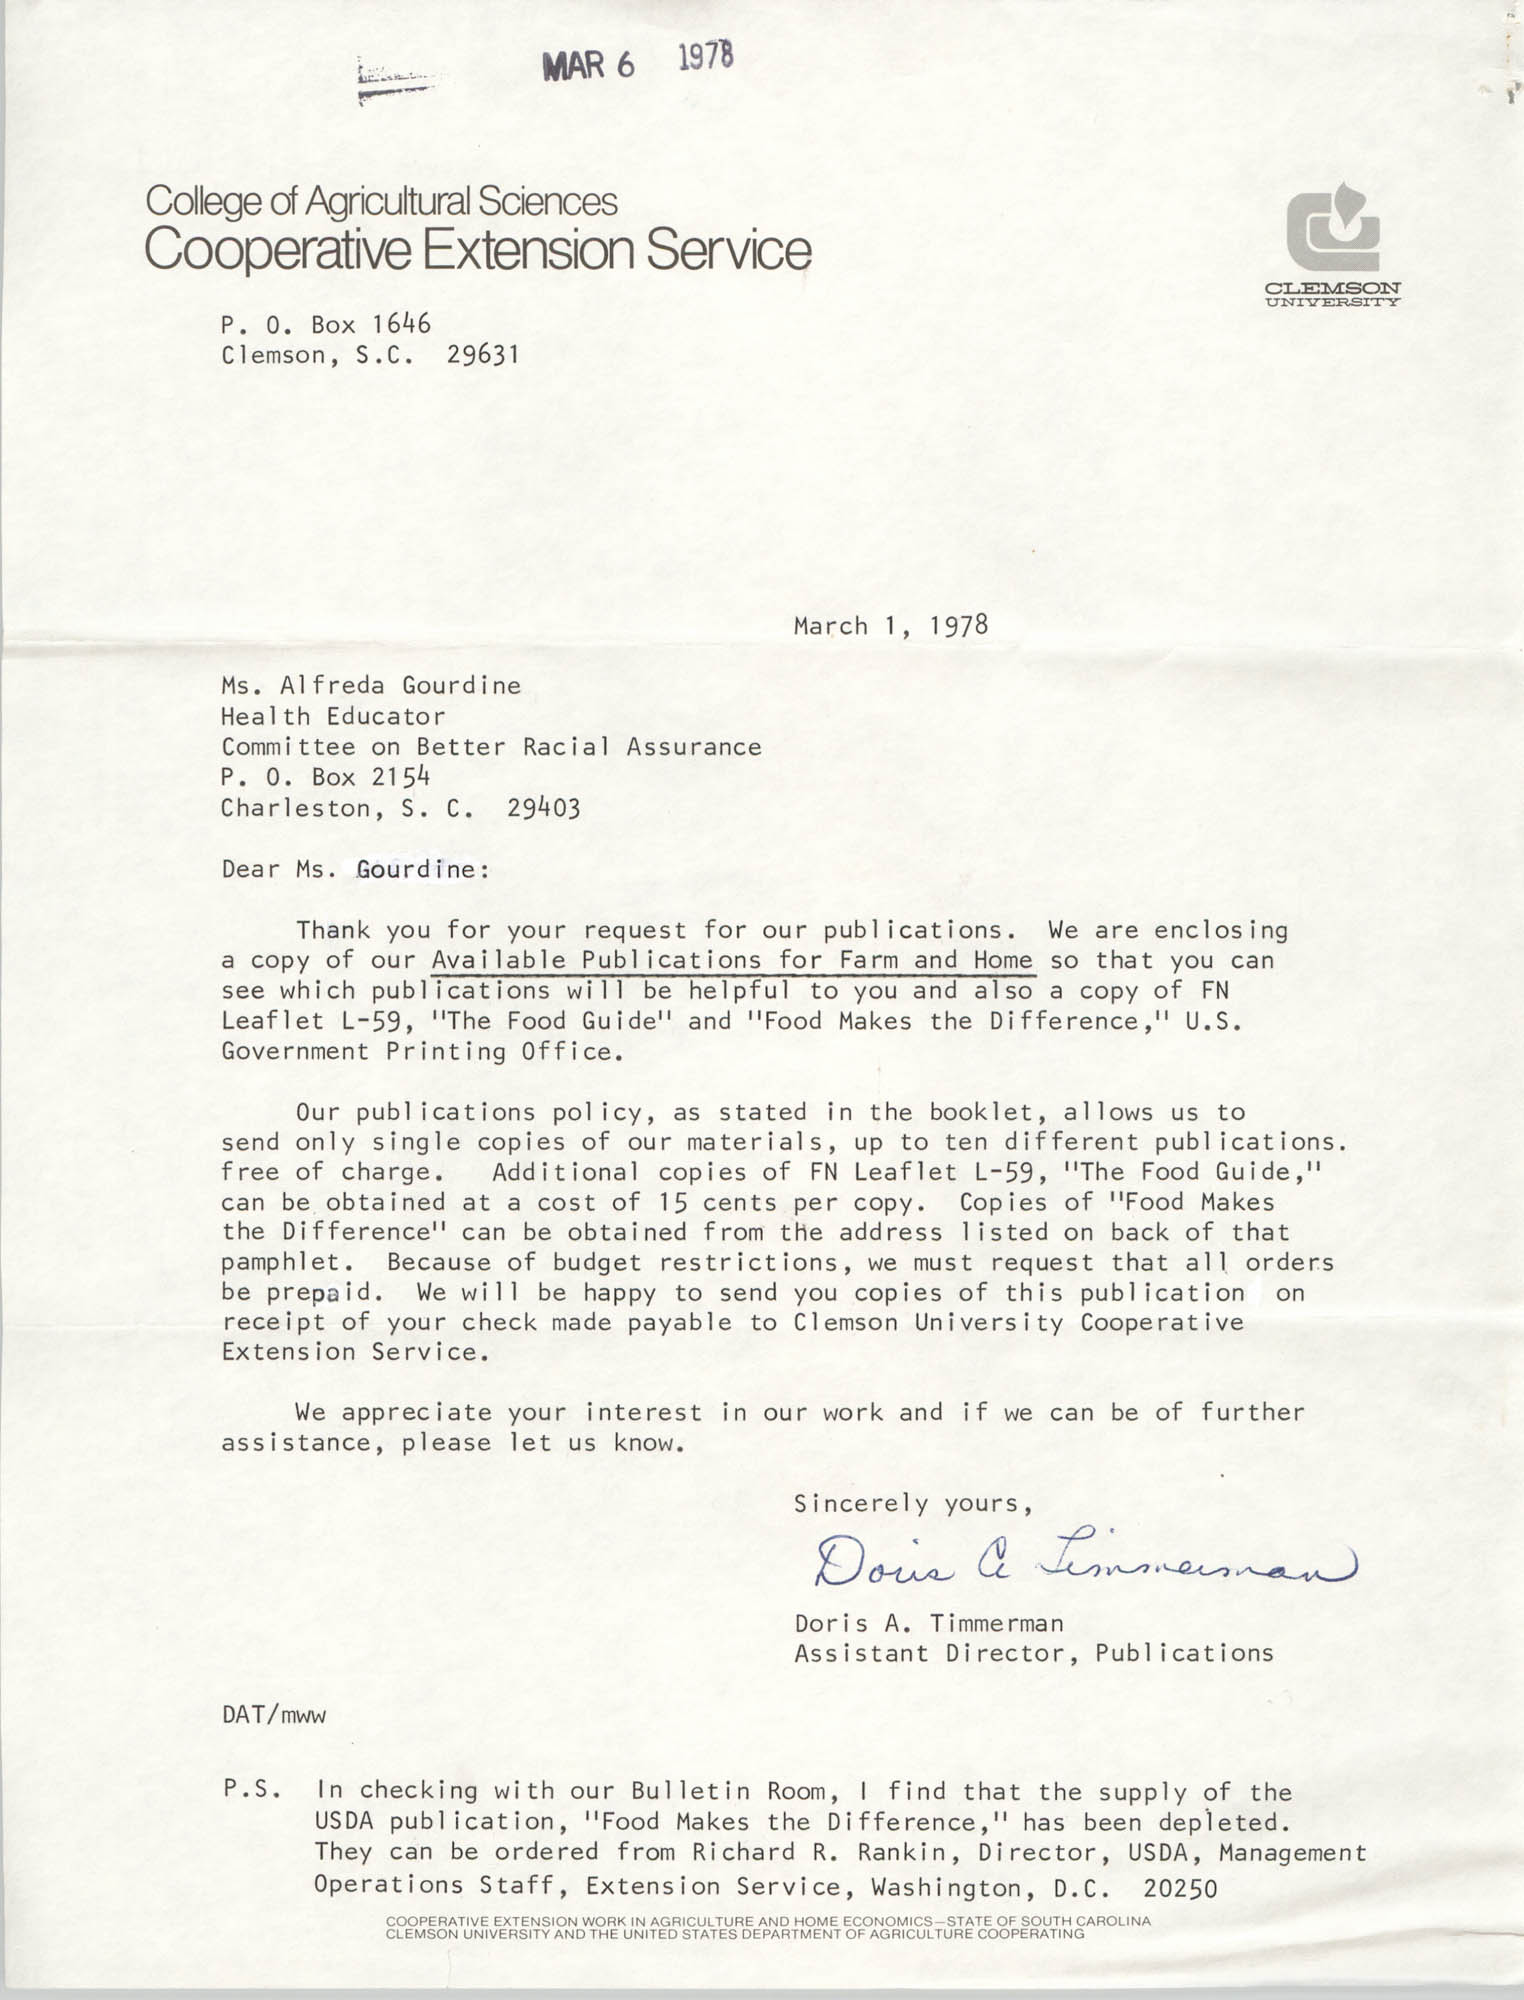 Letter from Doris A. Timmerman to Alfreda Gourdine, March 1, 1978